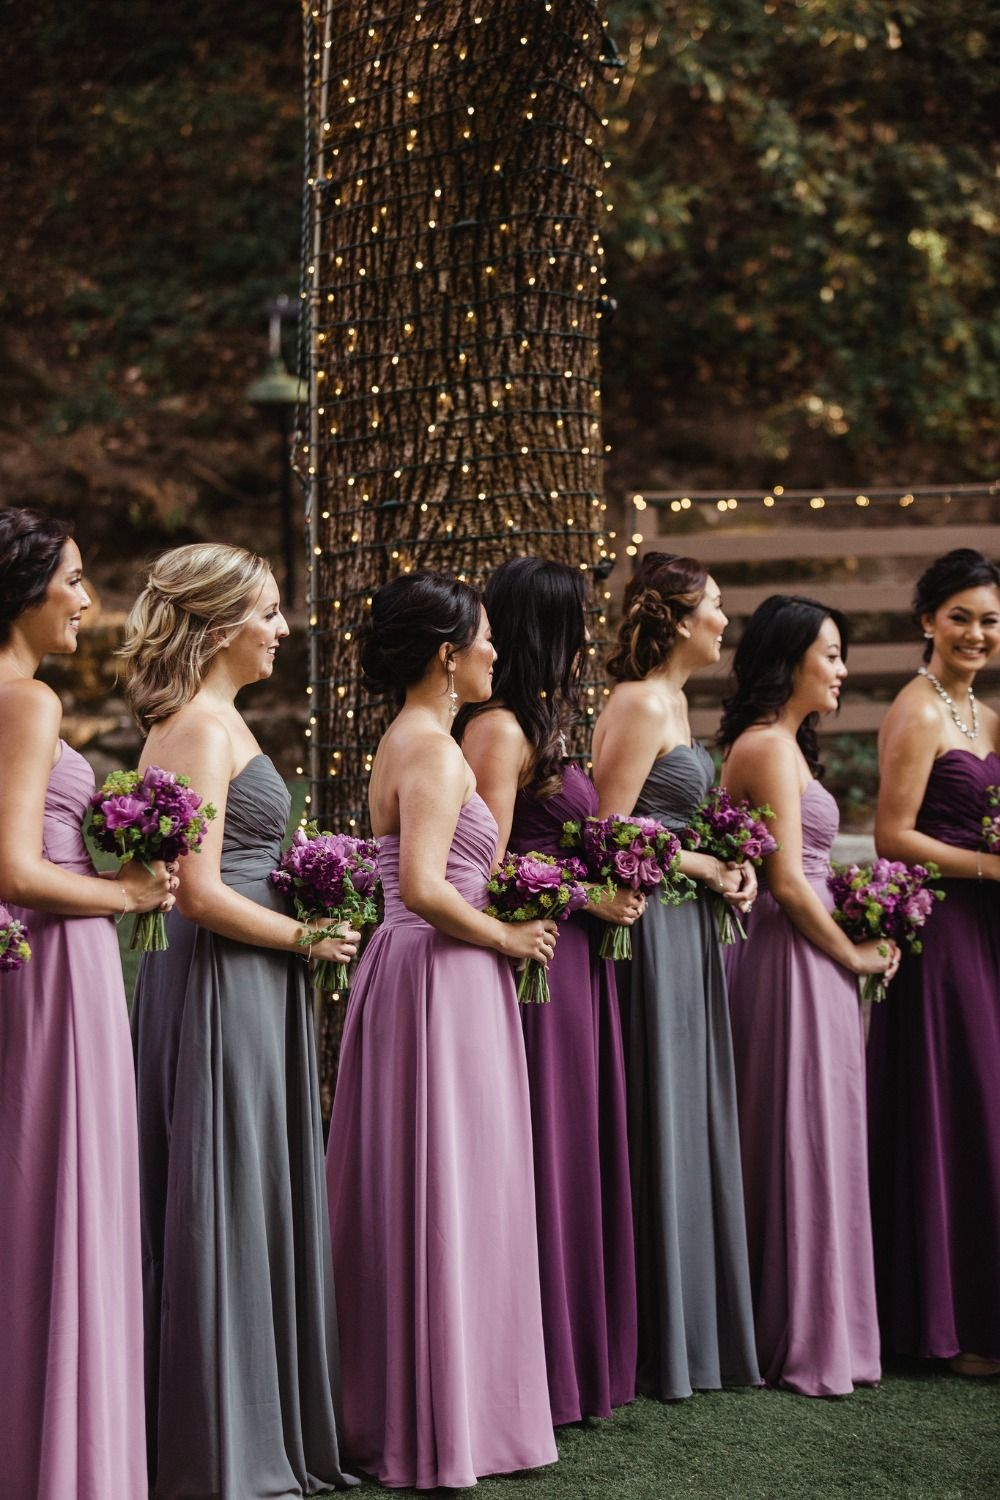 New Trendy Bridesmaid Dresses In Every Color From Azazie